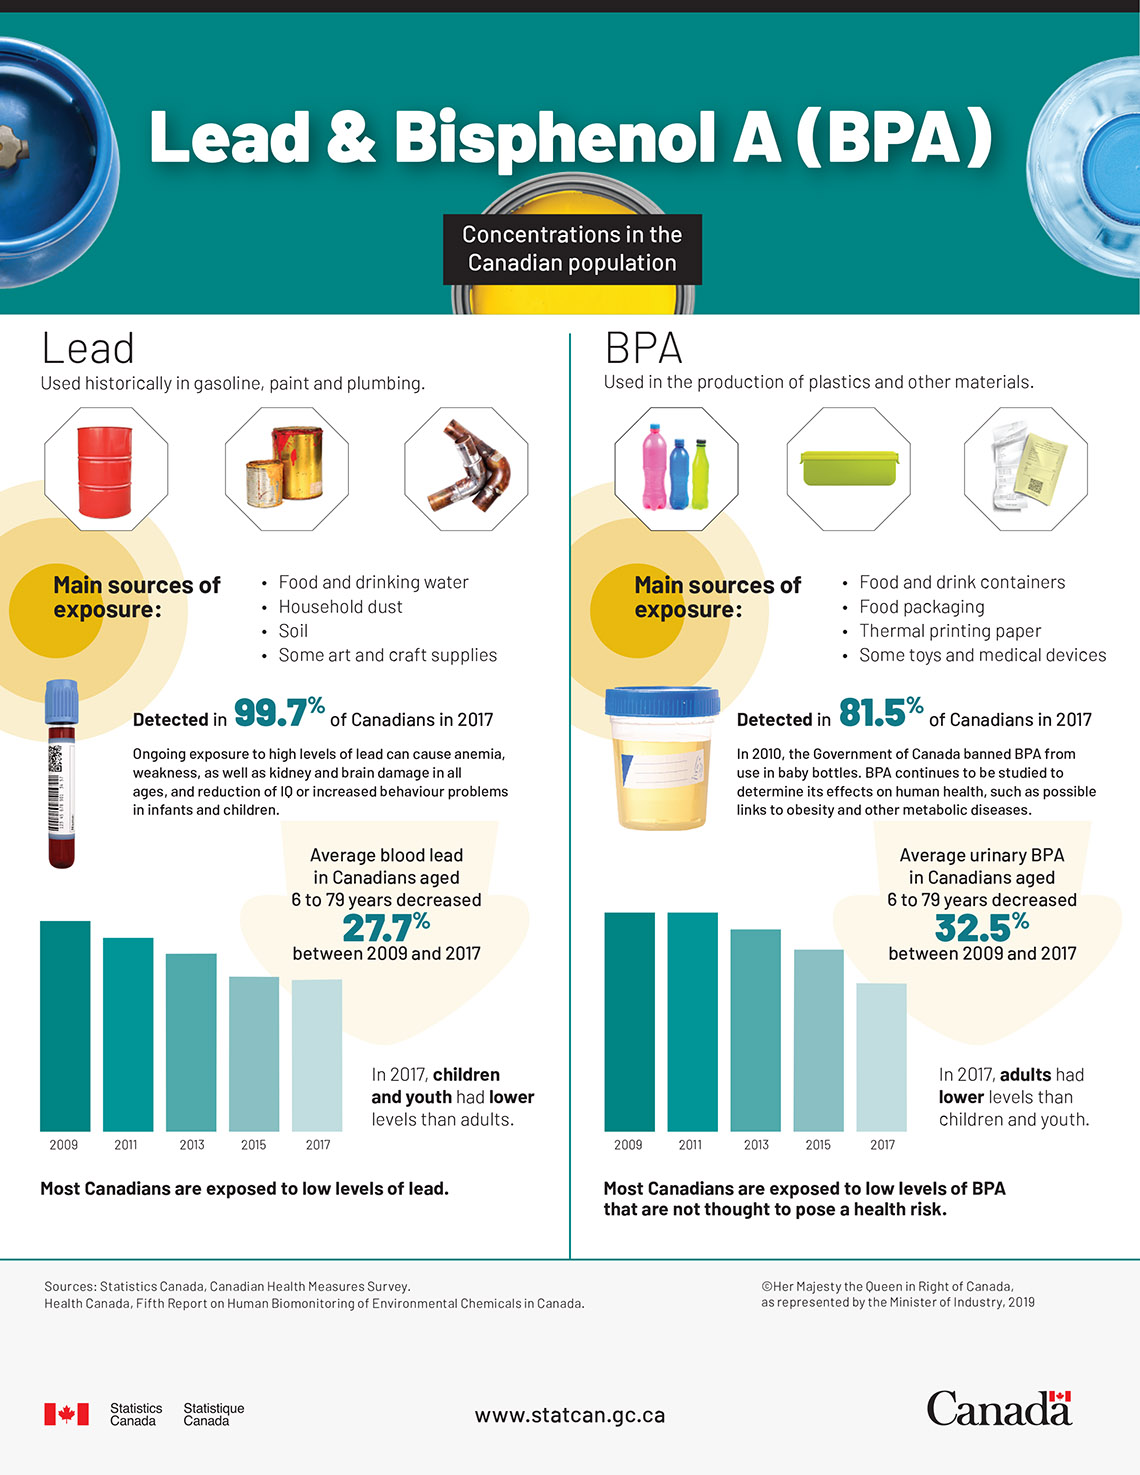 Infographic: Lead and bisphenol A (BPA) concentrations in the Canadian population